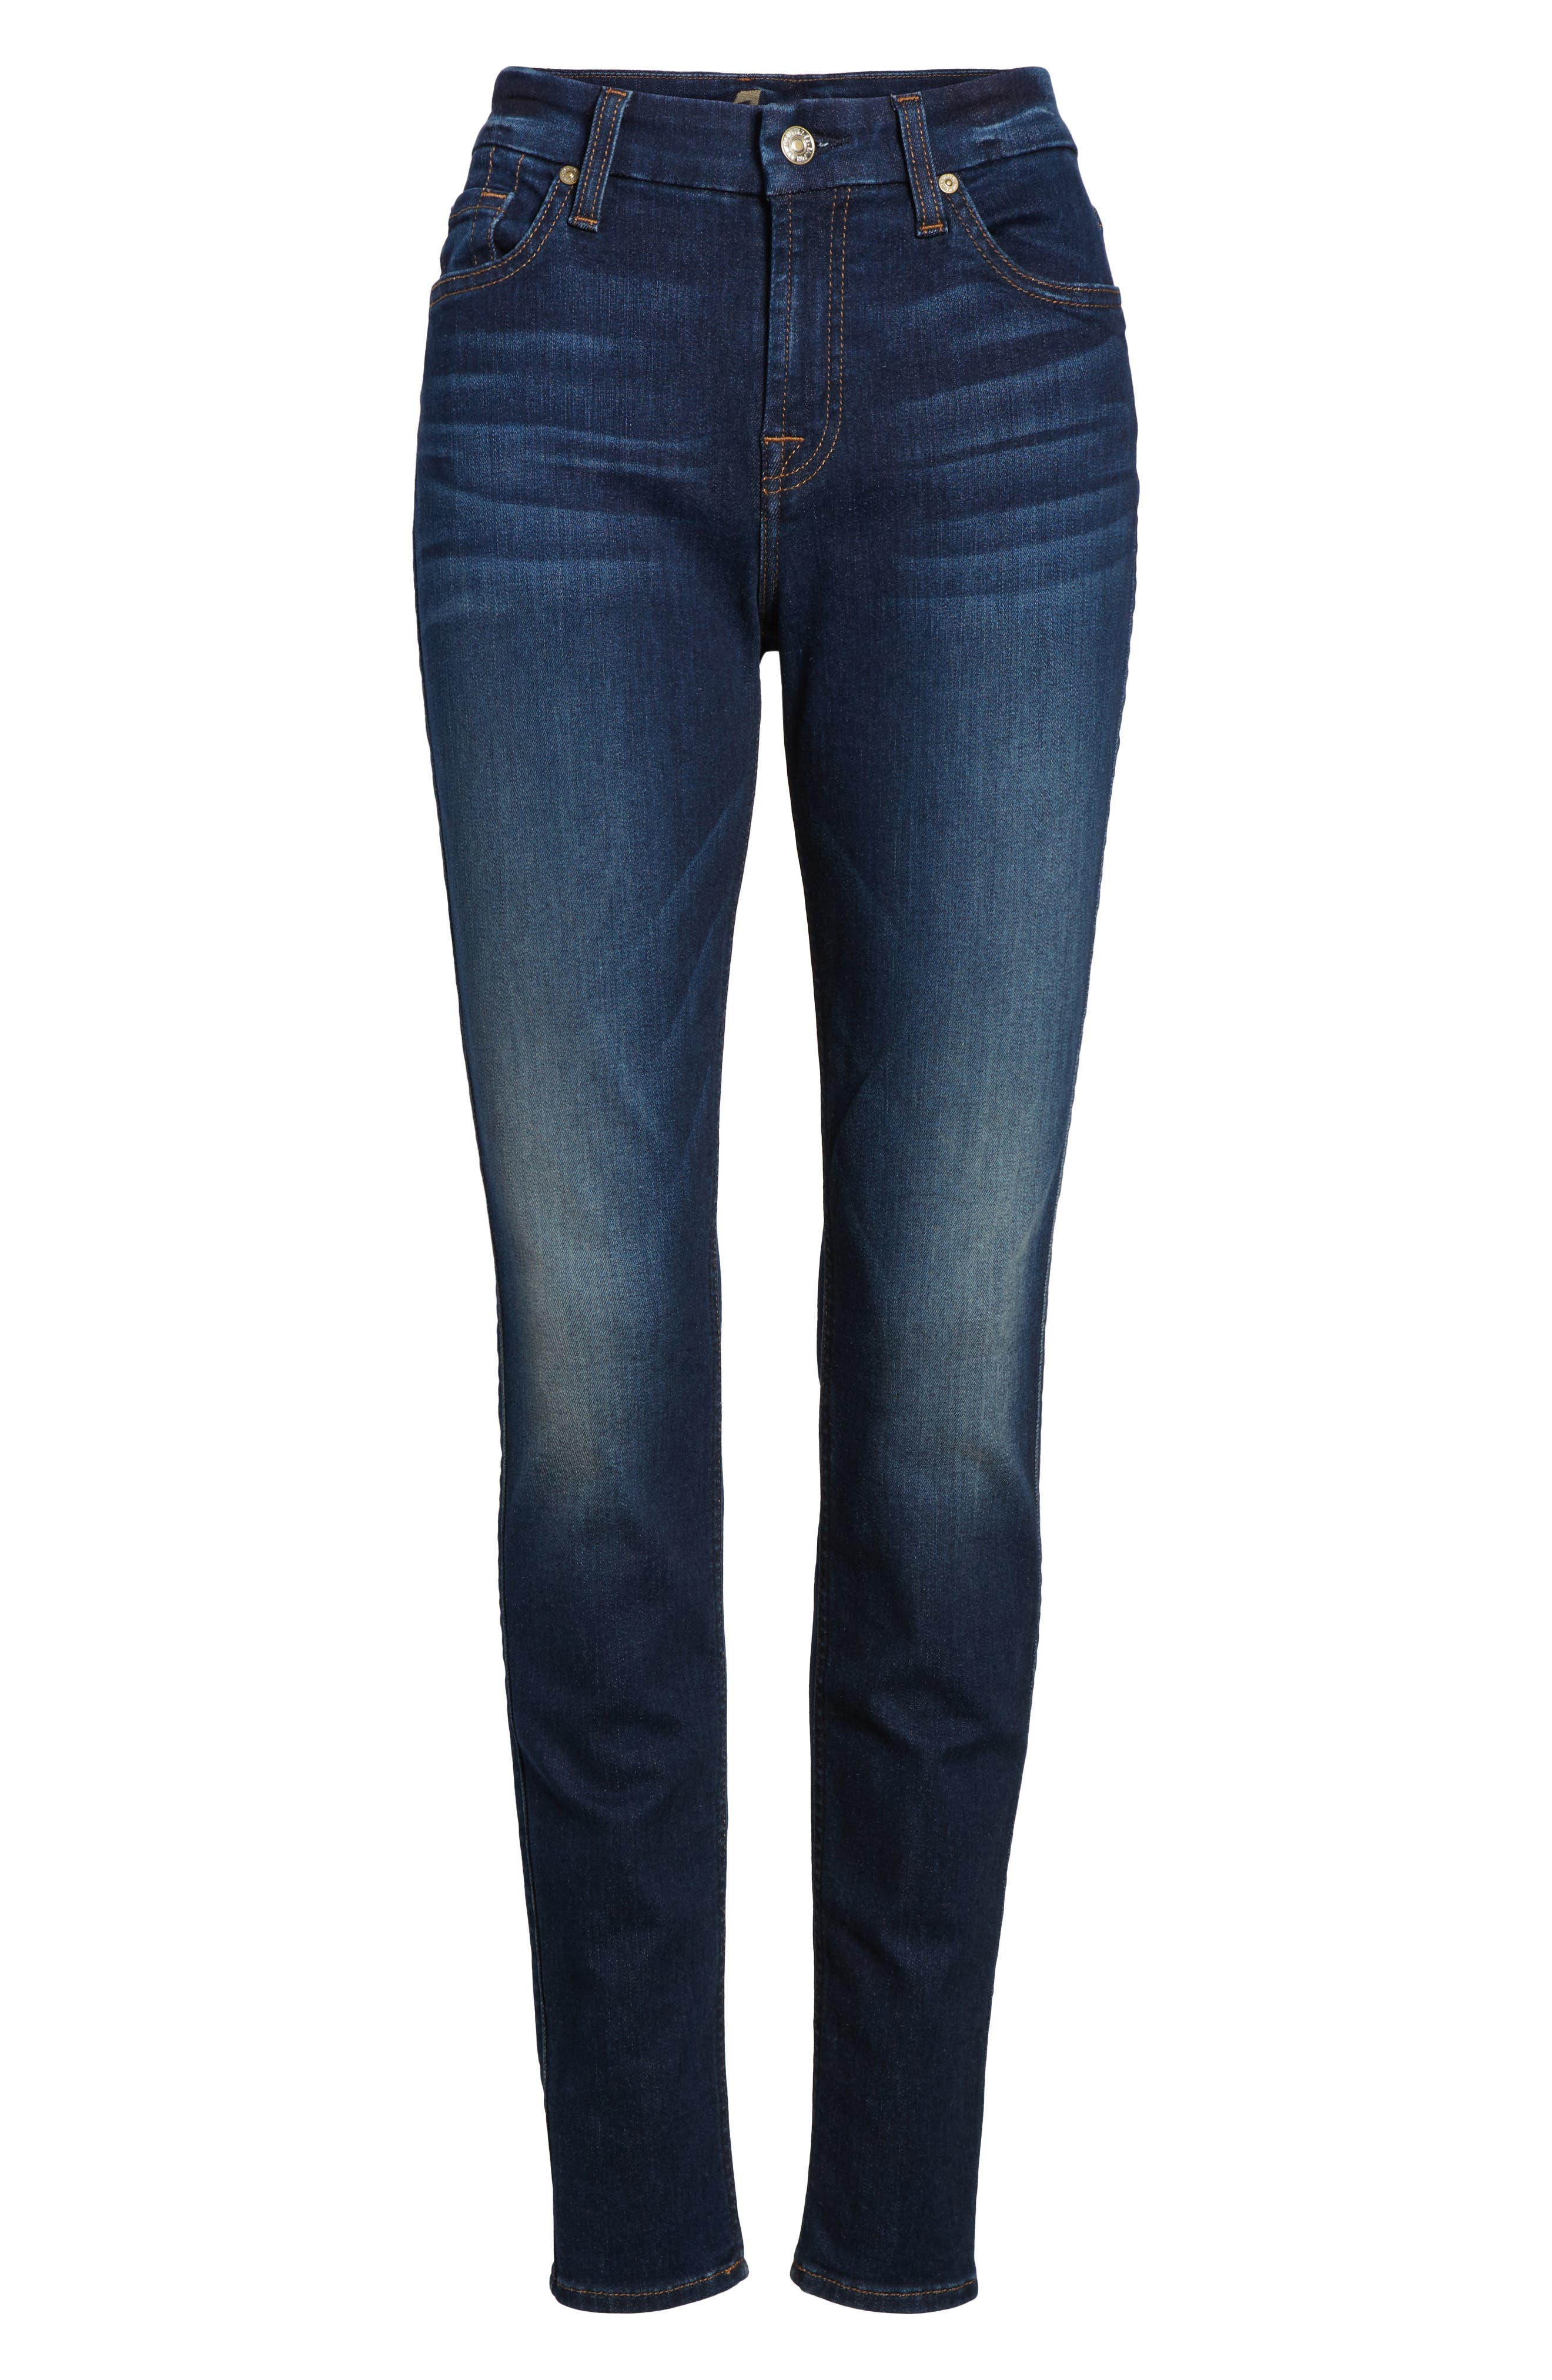 7 FOR ALL MANKIND<SUP>®</SUP>, b(air) High Waist Skinny Jeans, Alternate thumbnail 7, color, MORENO